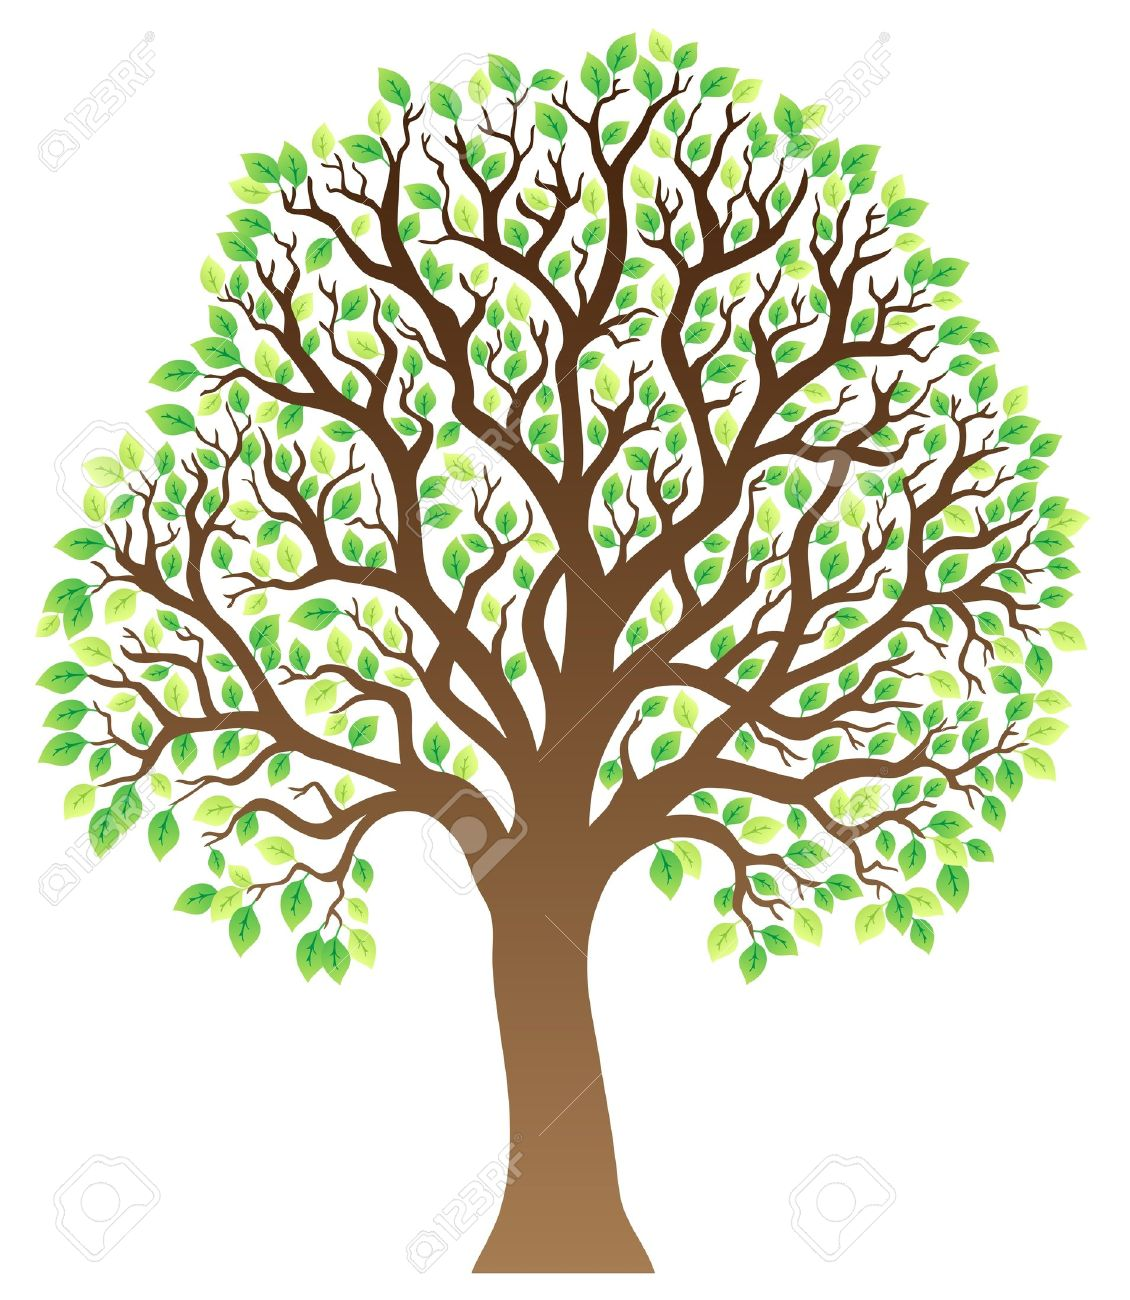 Tree With Green Leaves 1 Vector Illustration Royalty Free Cliparts Vectors And Stock Illustration Image 11918023 ✓ free for commercial use ✓ high quality images. tree with green leaves 1 vector illustration